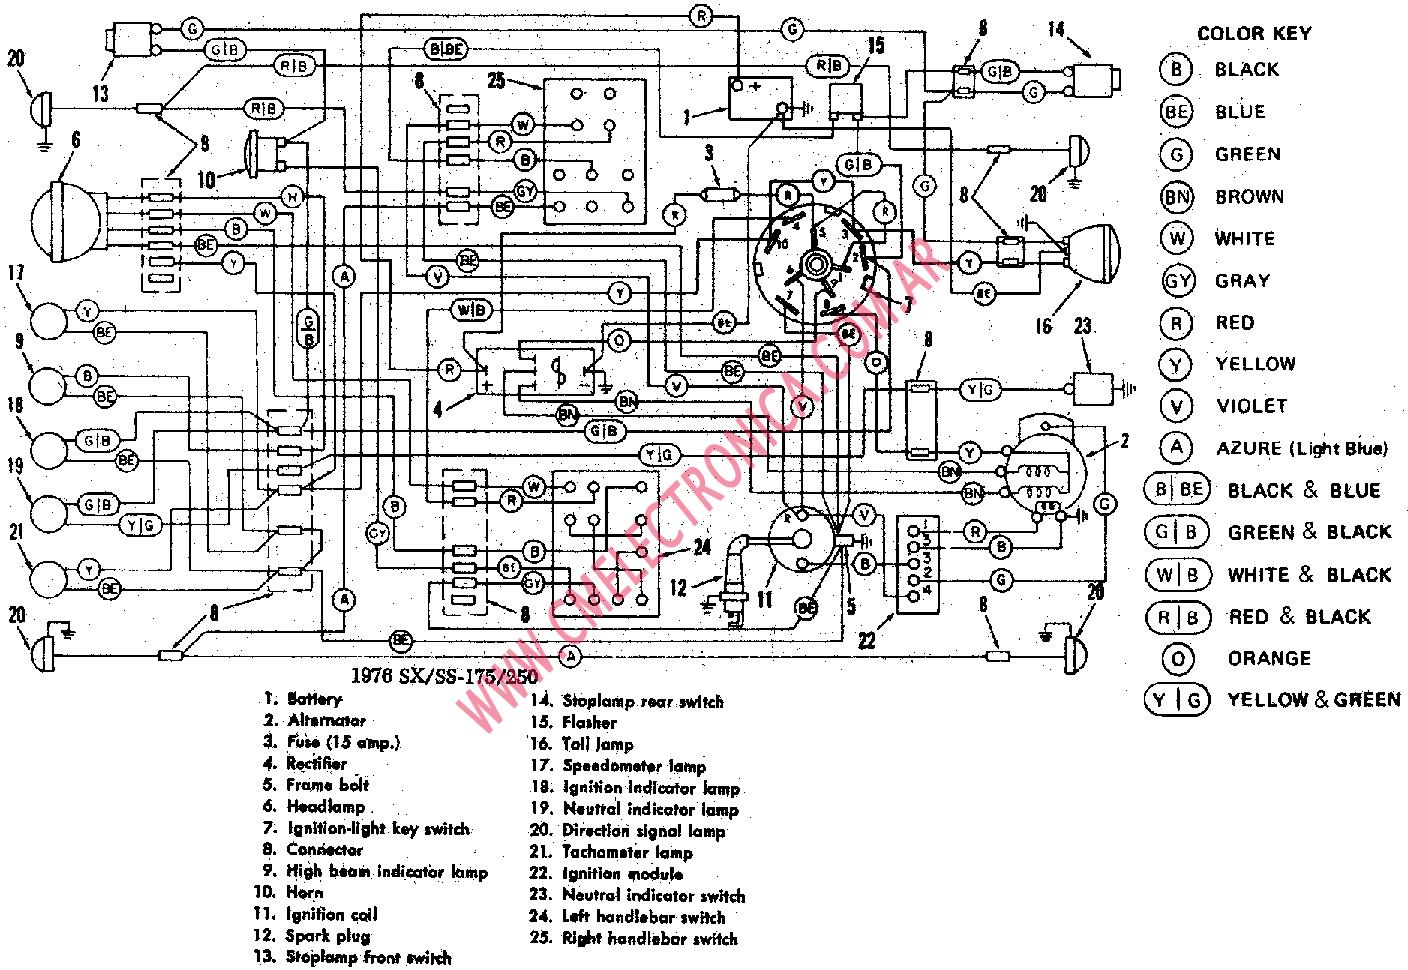 1996 Lt1 Engine Wiring Diagram Books Of Harley Davidson Diagrams Free Zr 500 Motor Image For User